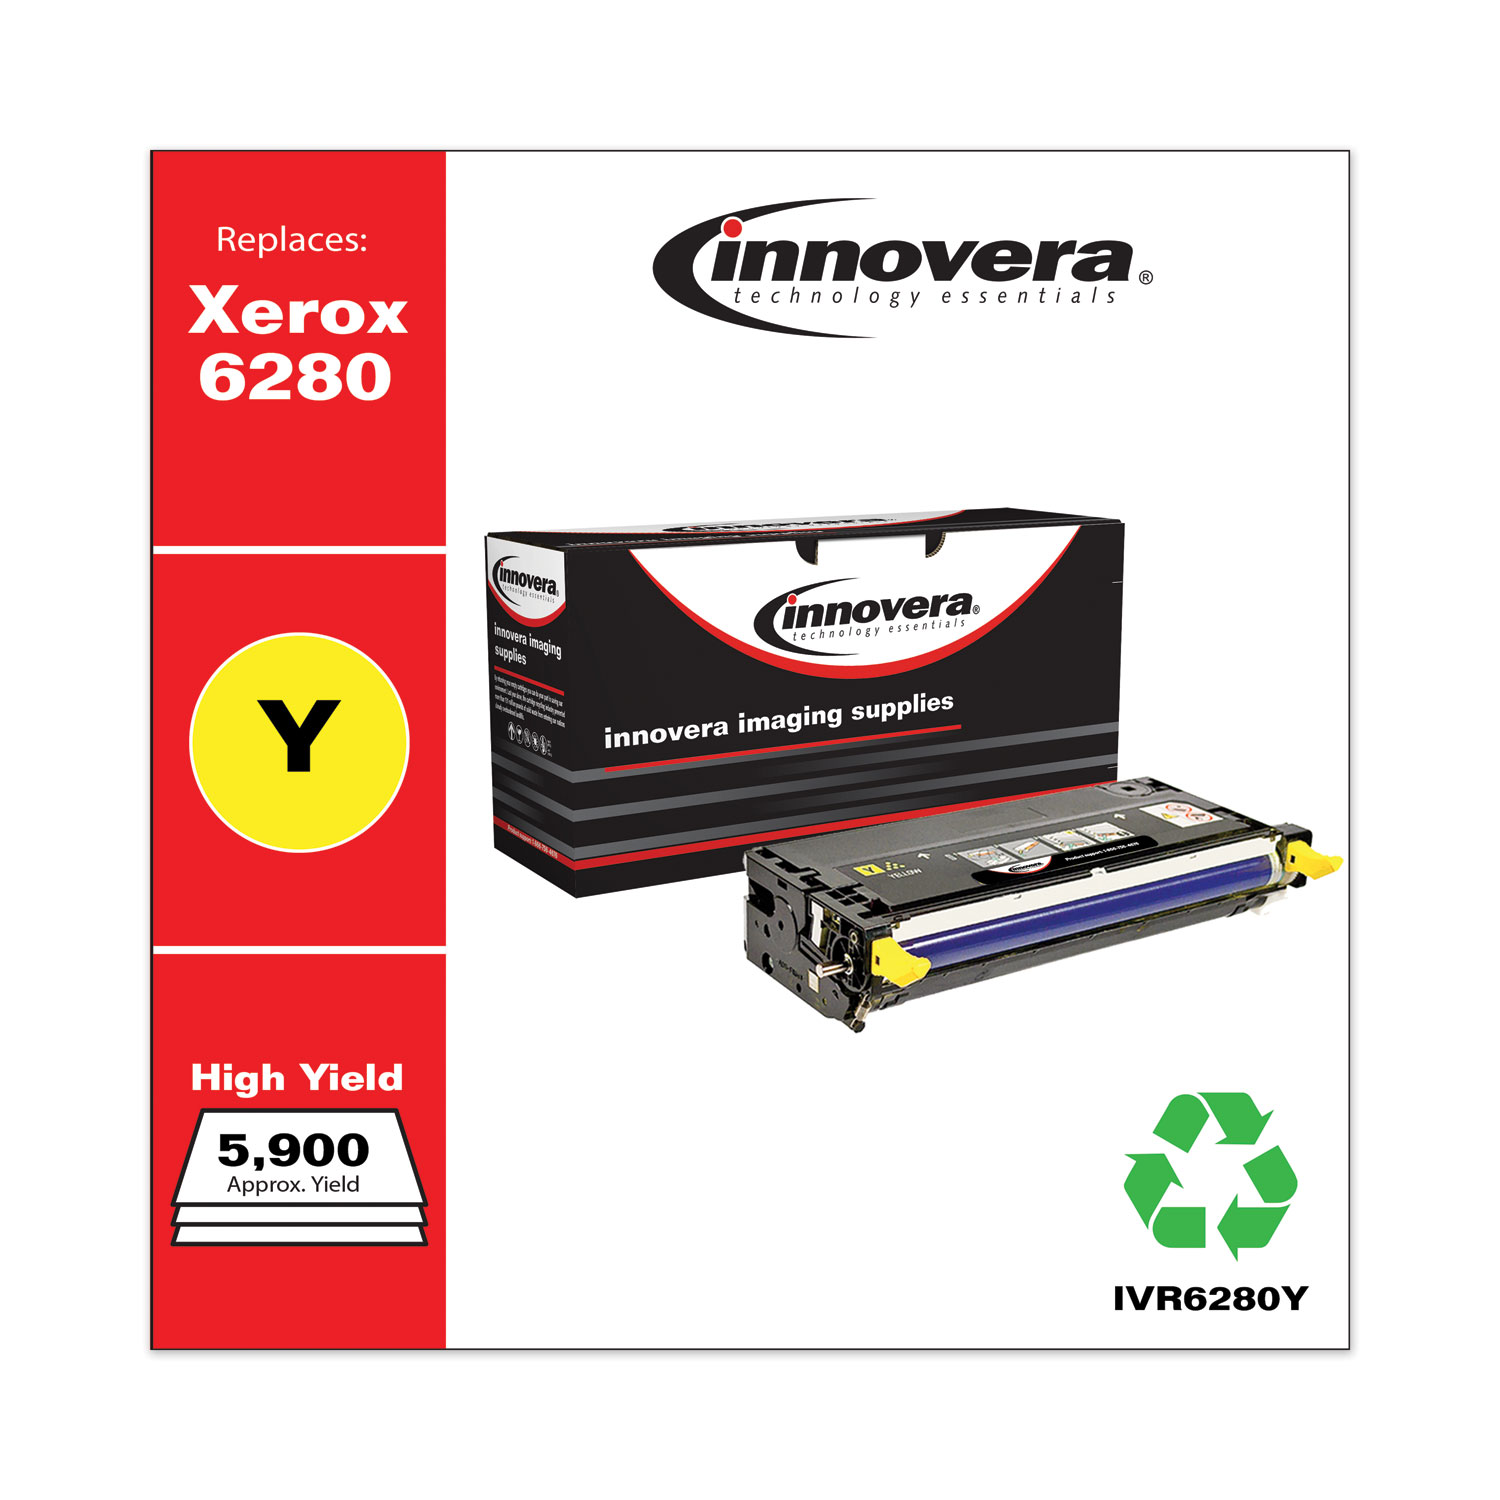 Remanufactured Yellow High-Yield Toner, Replacement for Xerox 106R01394, 5,900 Page-Yield IVR6280Y